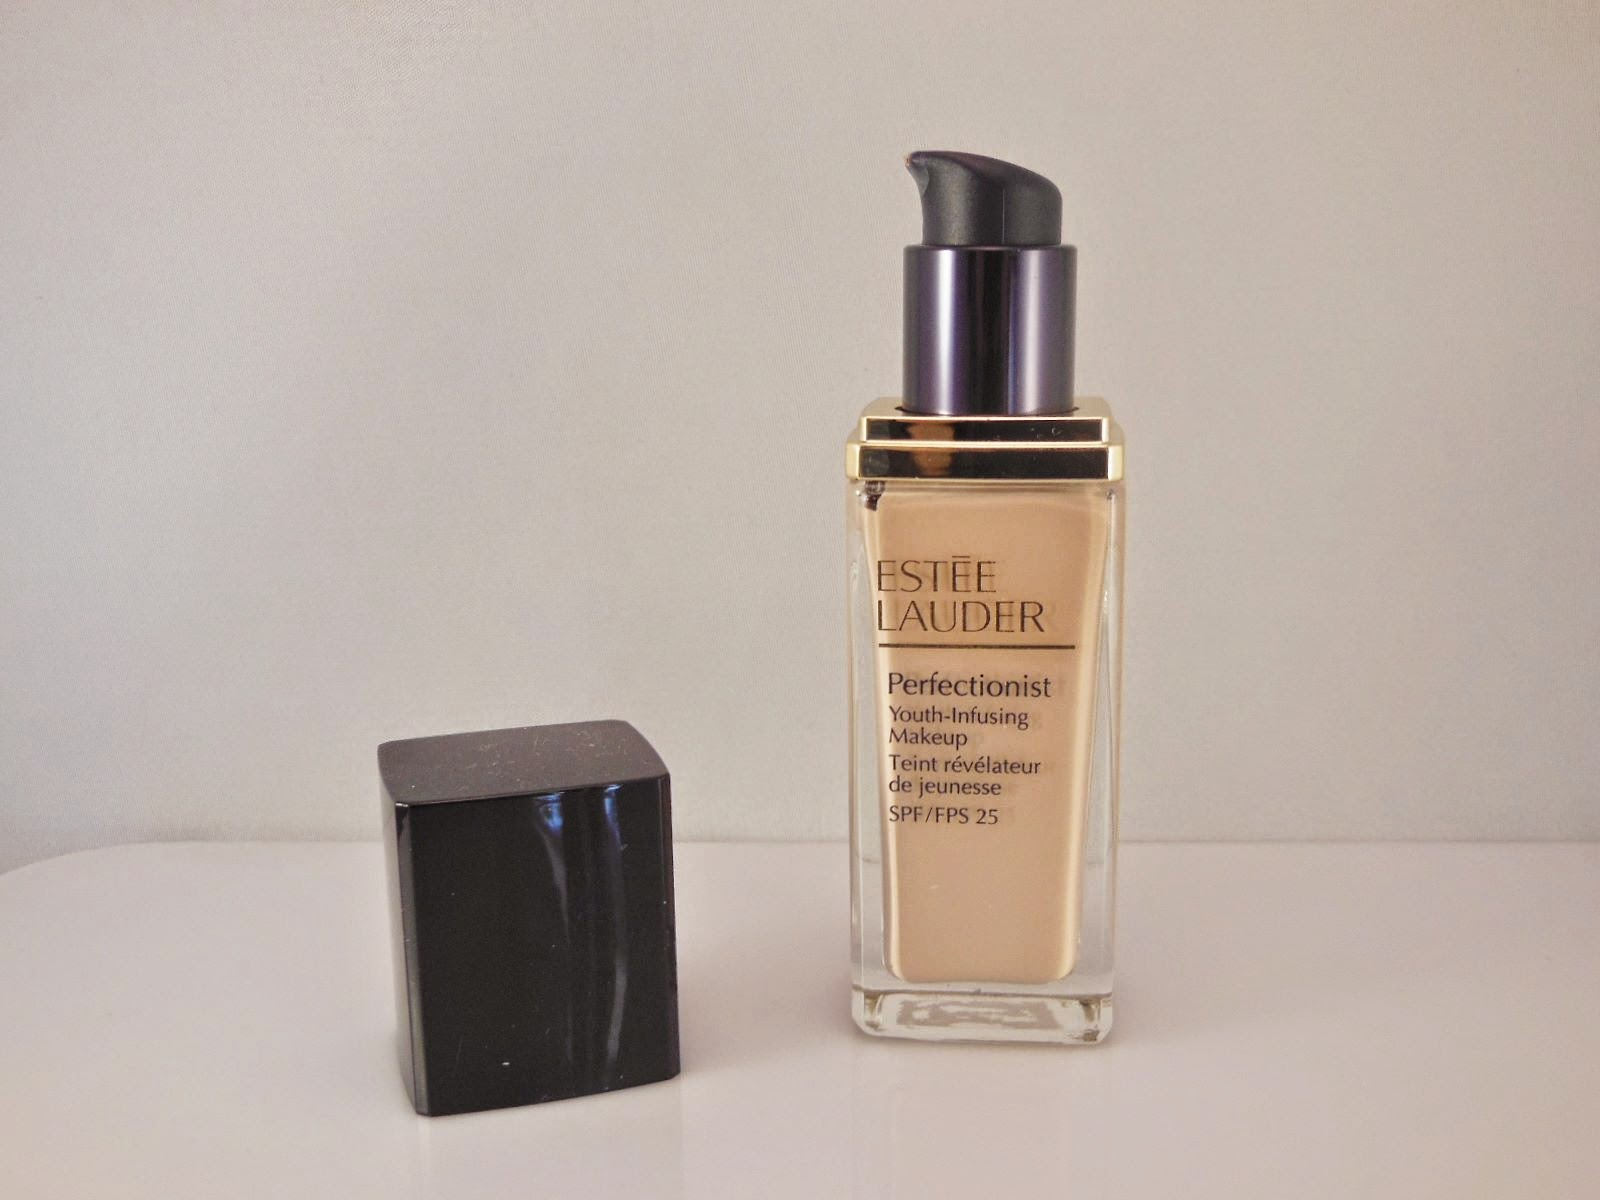 Luminesce Jeunessglobal Product Review Estee Lauder Perfectionist Wrinkle Lifting This Serum Helps To Smooth The Skin And Help Plump Lines Wrinkles So Longer More You Wear Foundation It Will Benefit Your